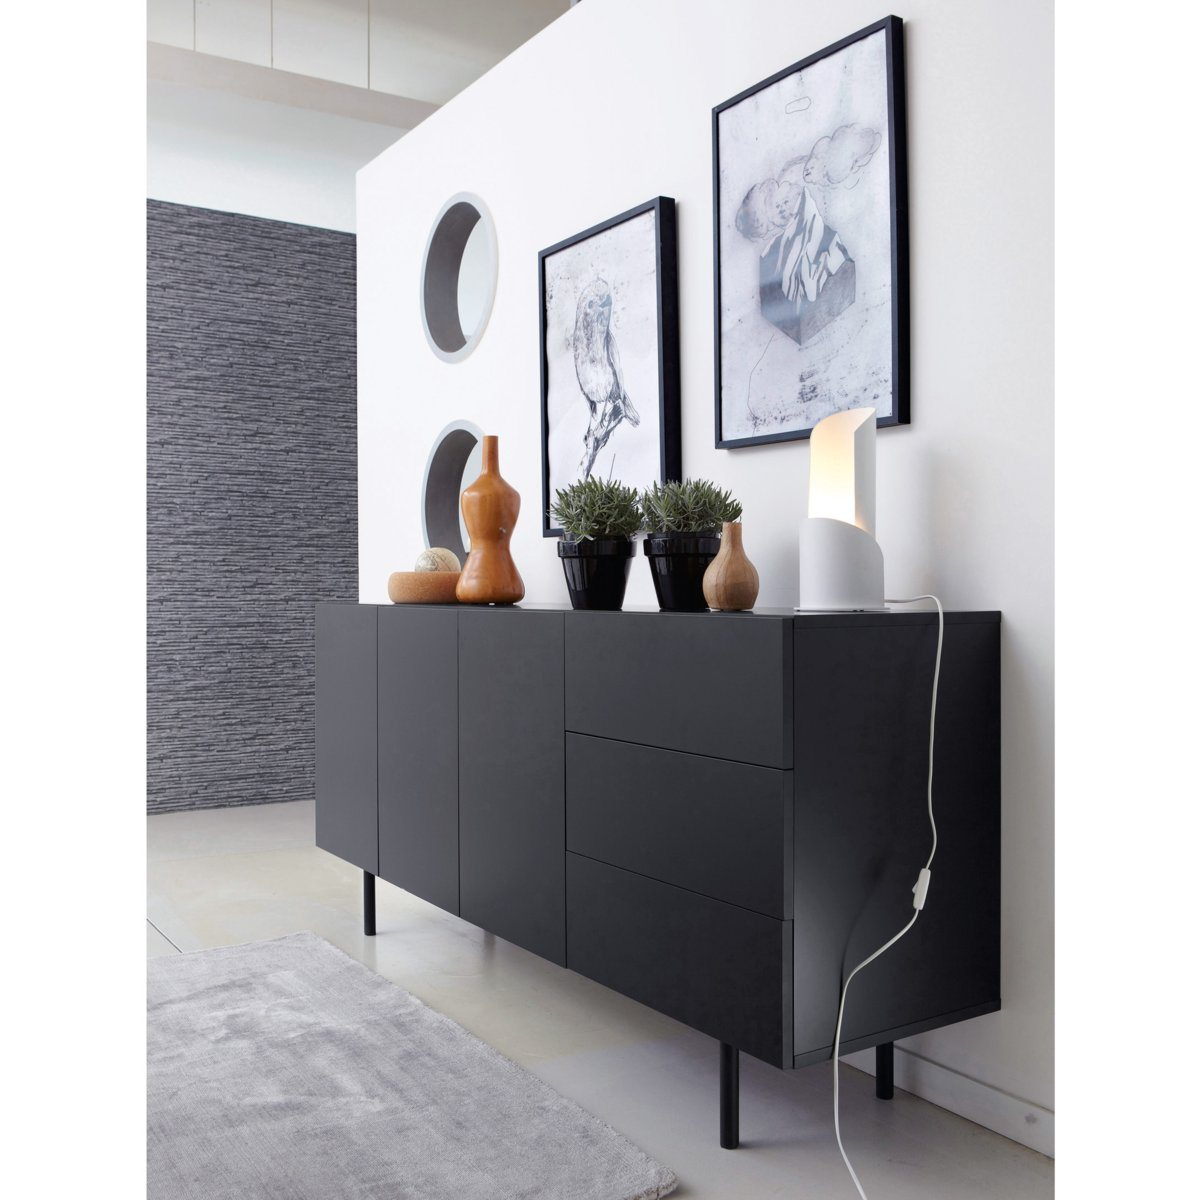 enfilade design pas cher maison design. Black Bedroom Furniture Sets. Home Design Ideas